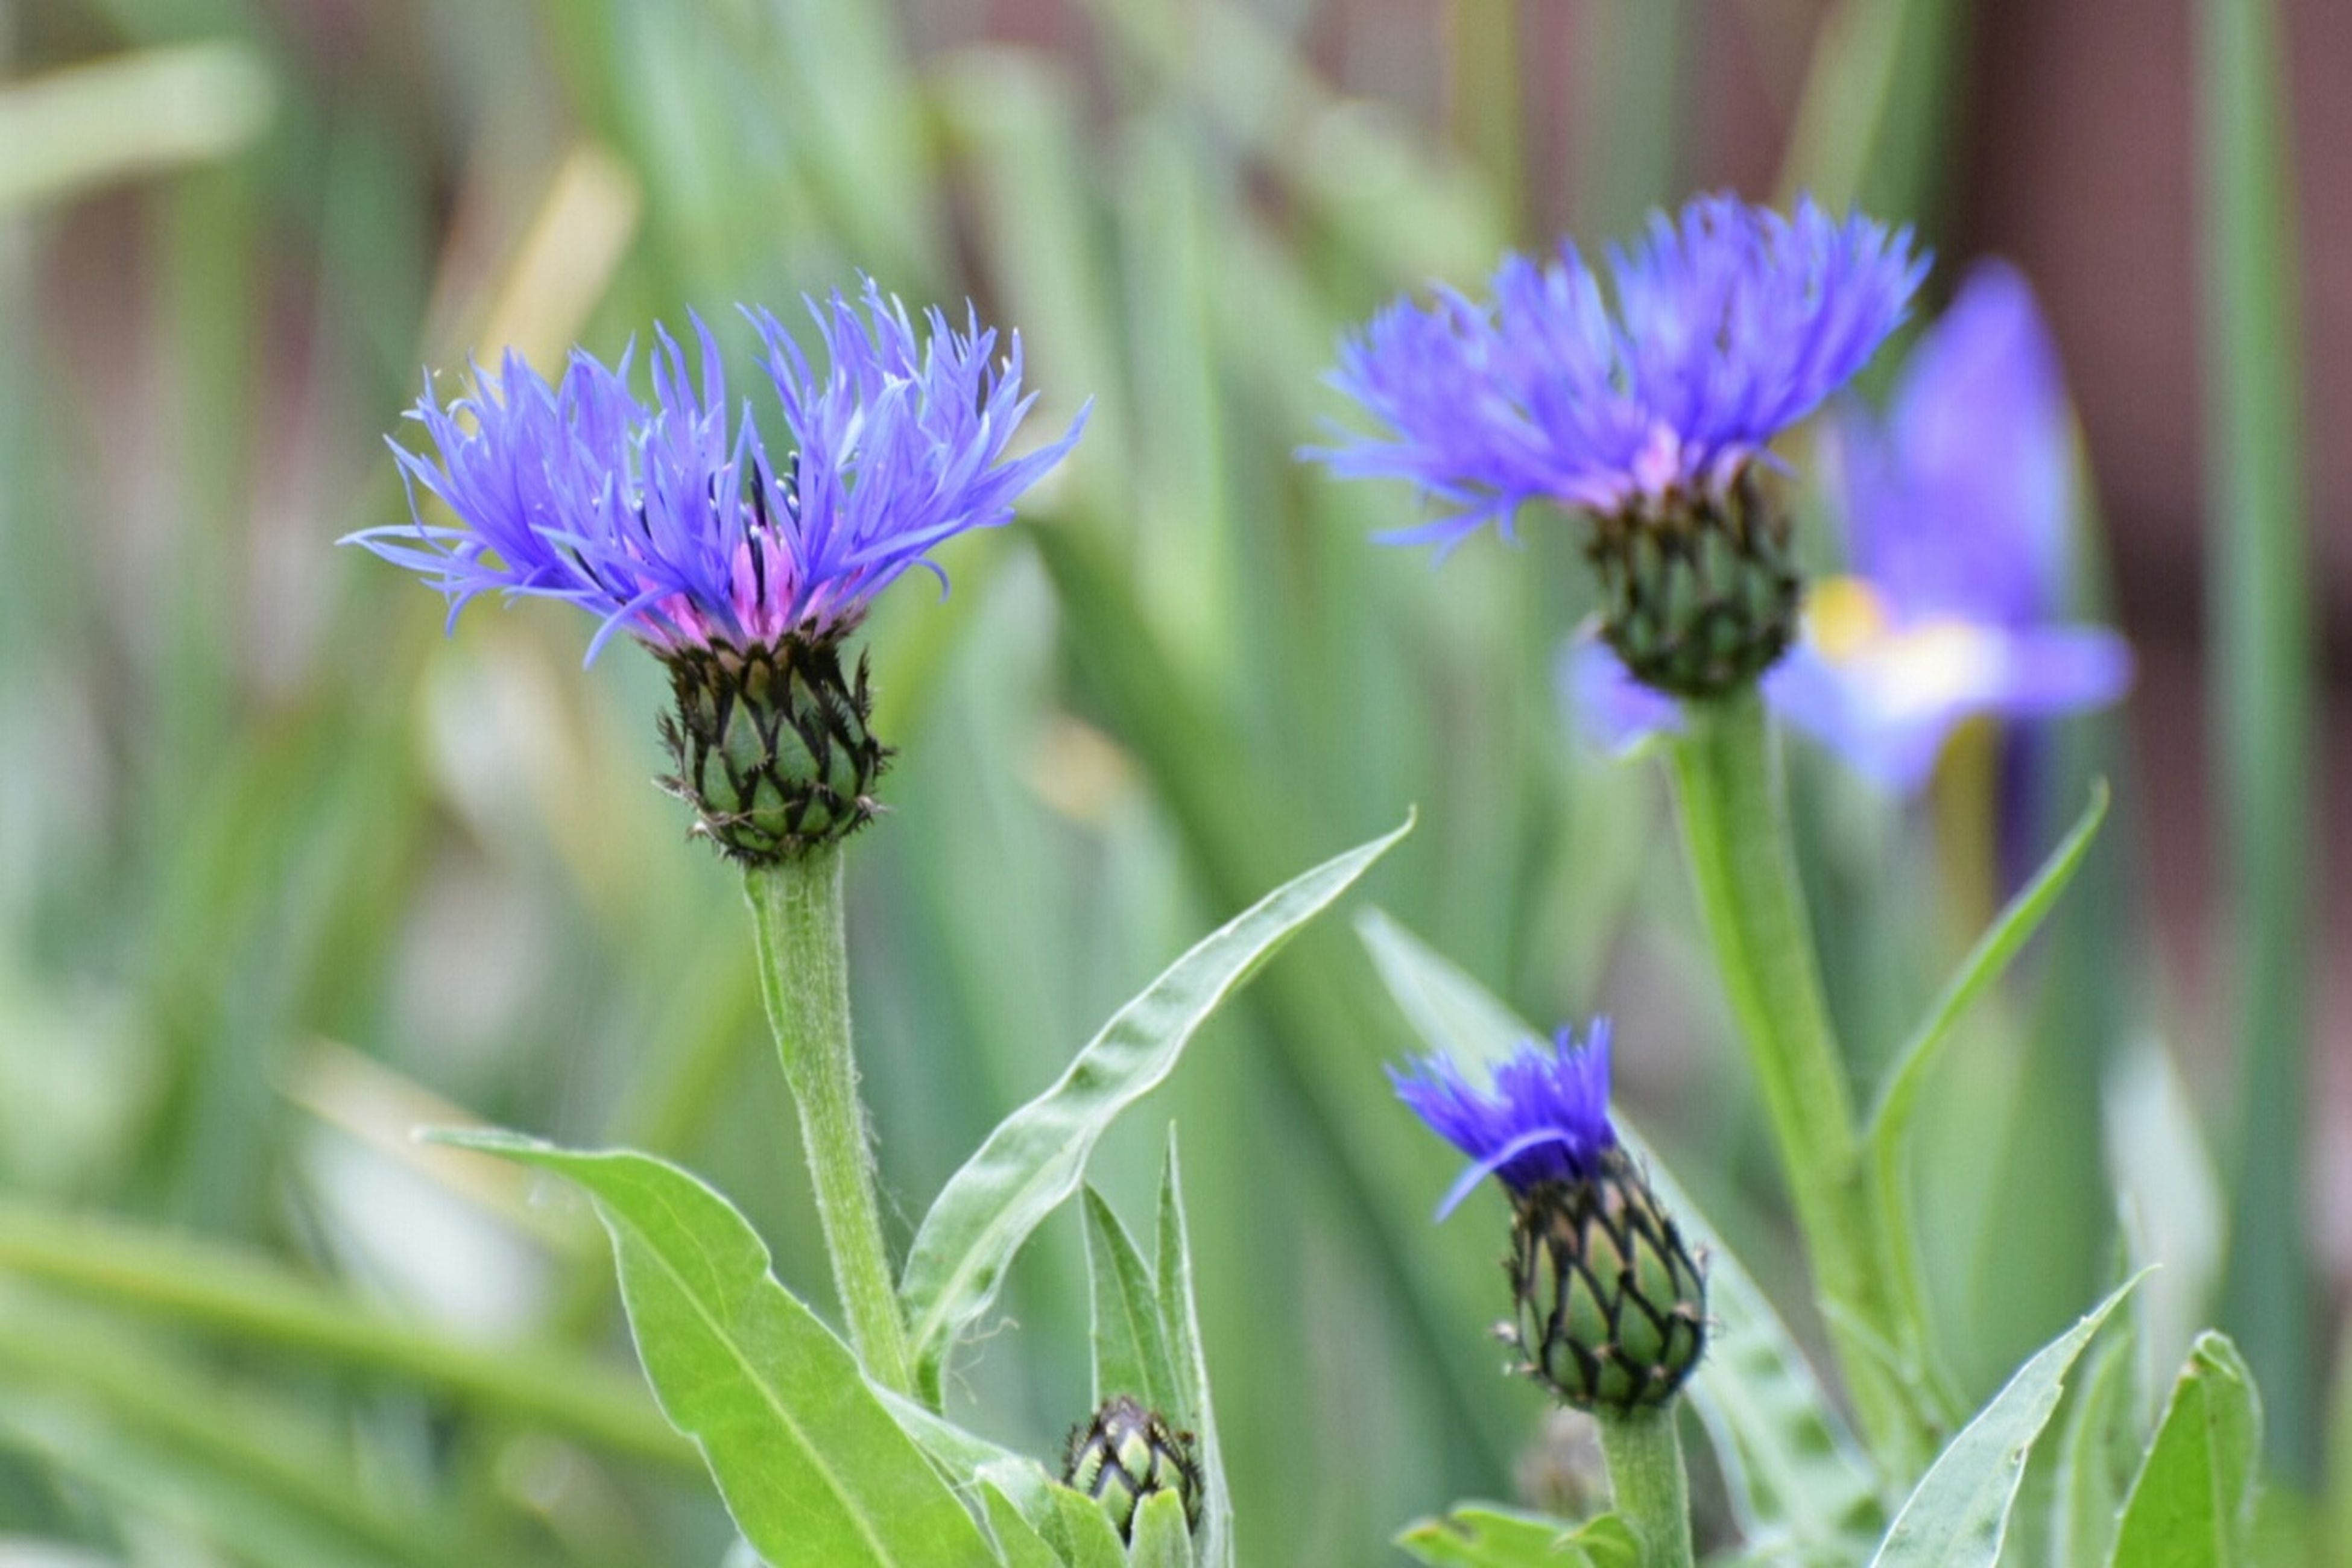 flower, freshness, purple, fragility, growth, petal, flower head, close-up, beauty in nature, plant, focus on foreground, nature, blooming, stem, leaf, in bloom, selective focus, day, outdoors, no people